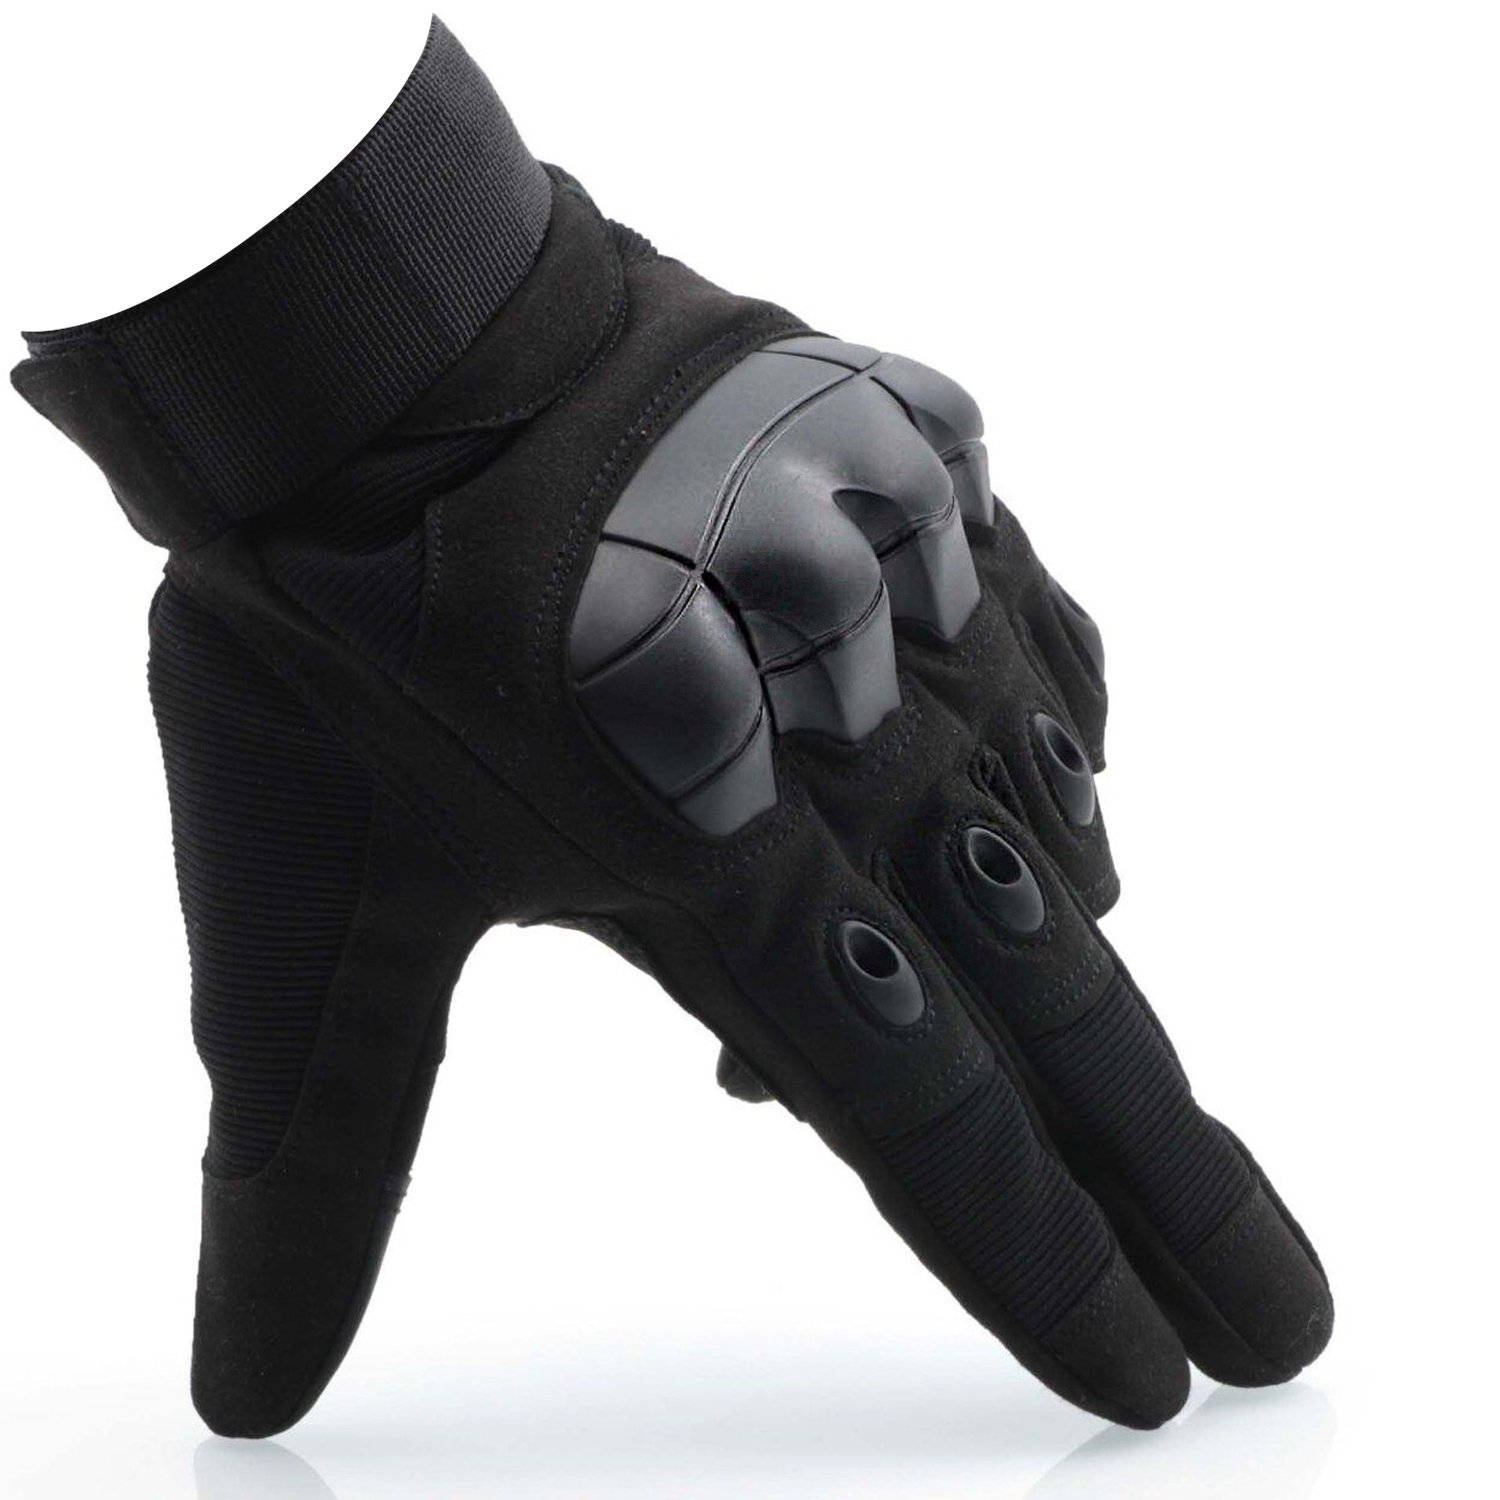 Motorcycle gloves discount - Omgai Men S Tech Touch Gloves Full Finger Smart Gloves For Motorcycle Tactical Airsoft Outdoor